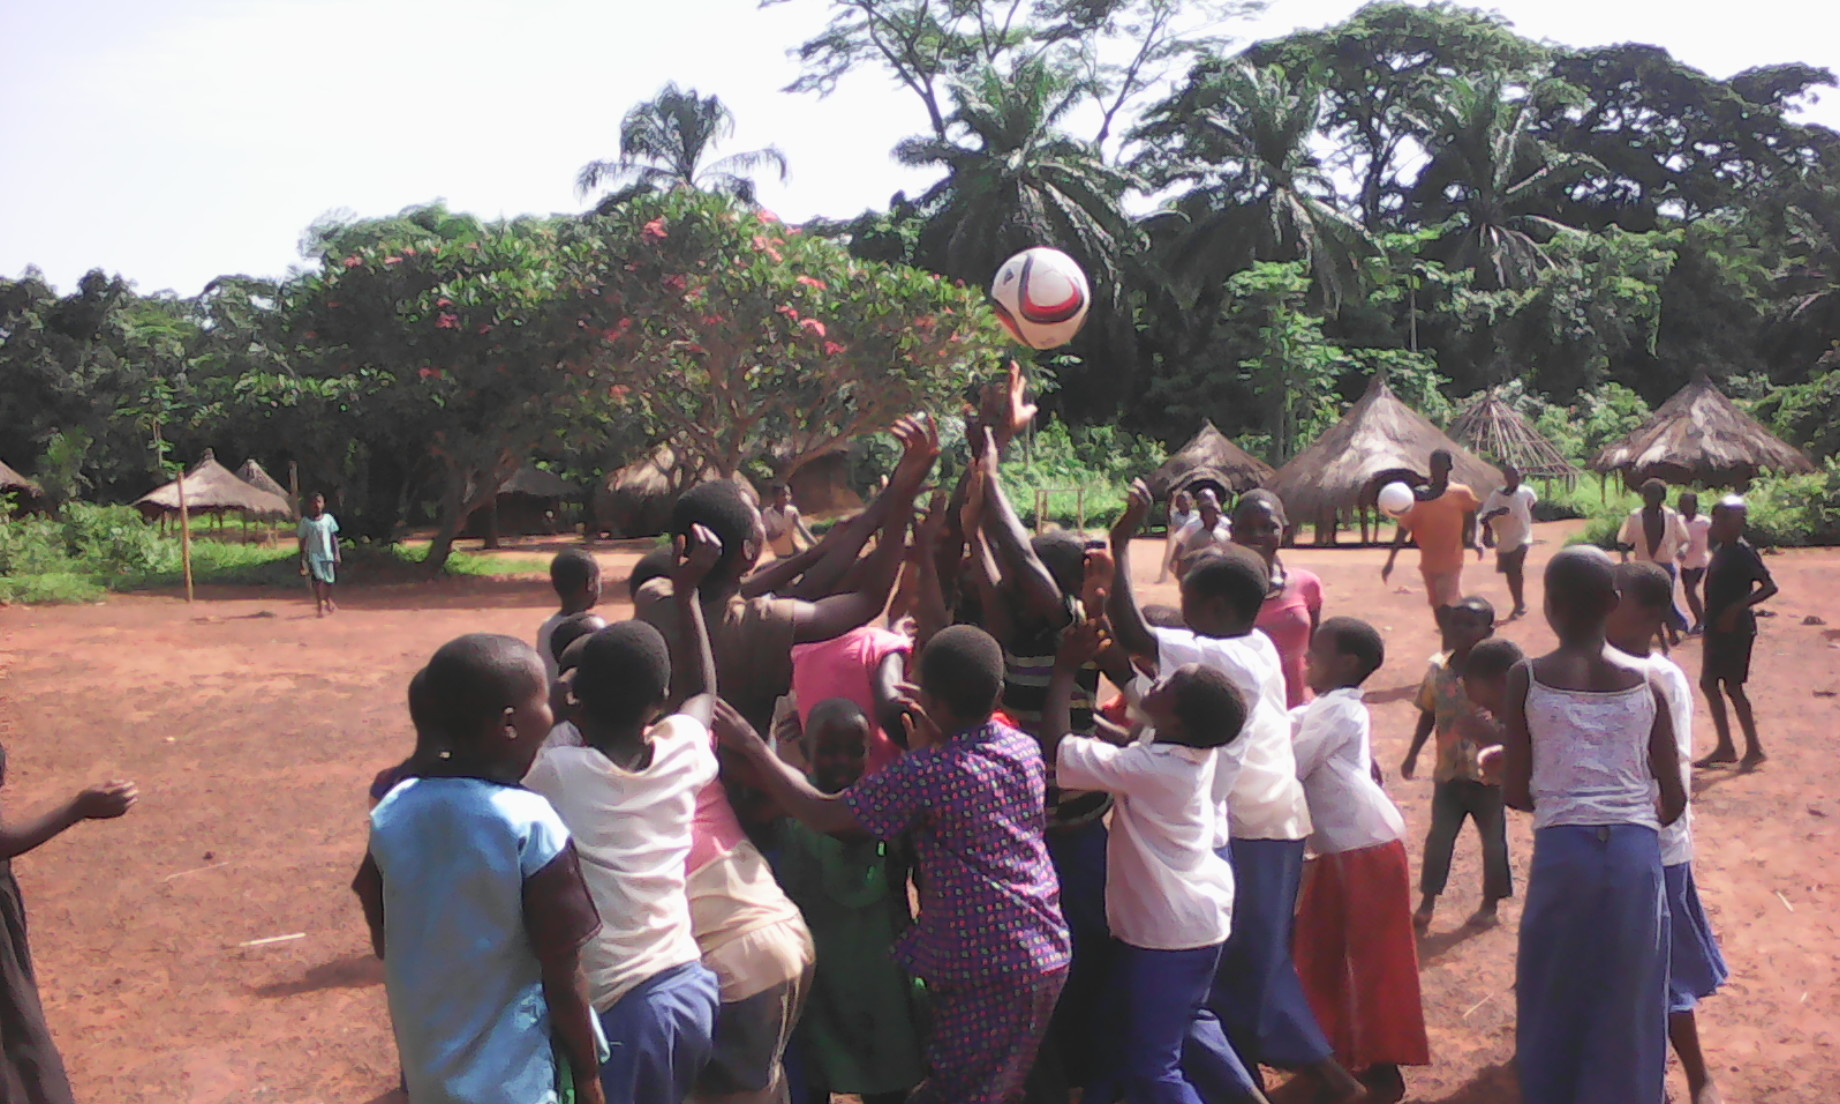 Football in the Democratic Republic of the Congo village of Epi